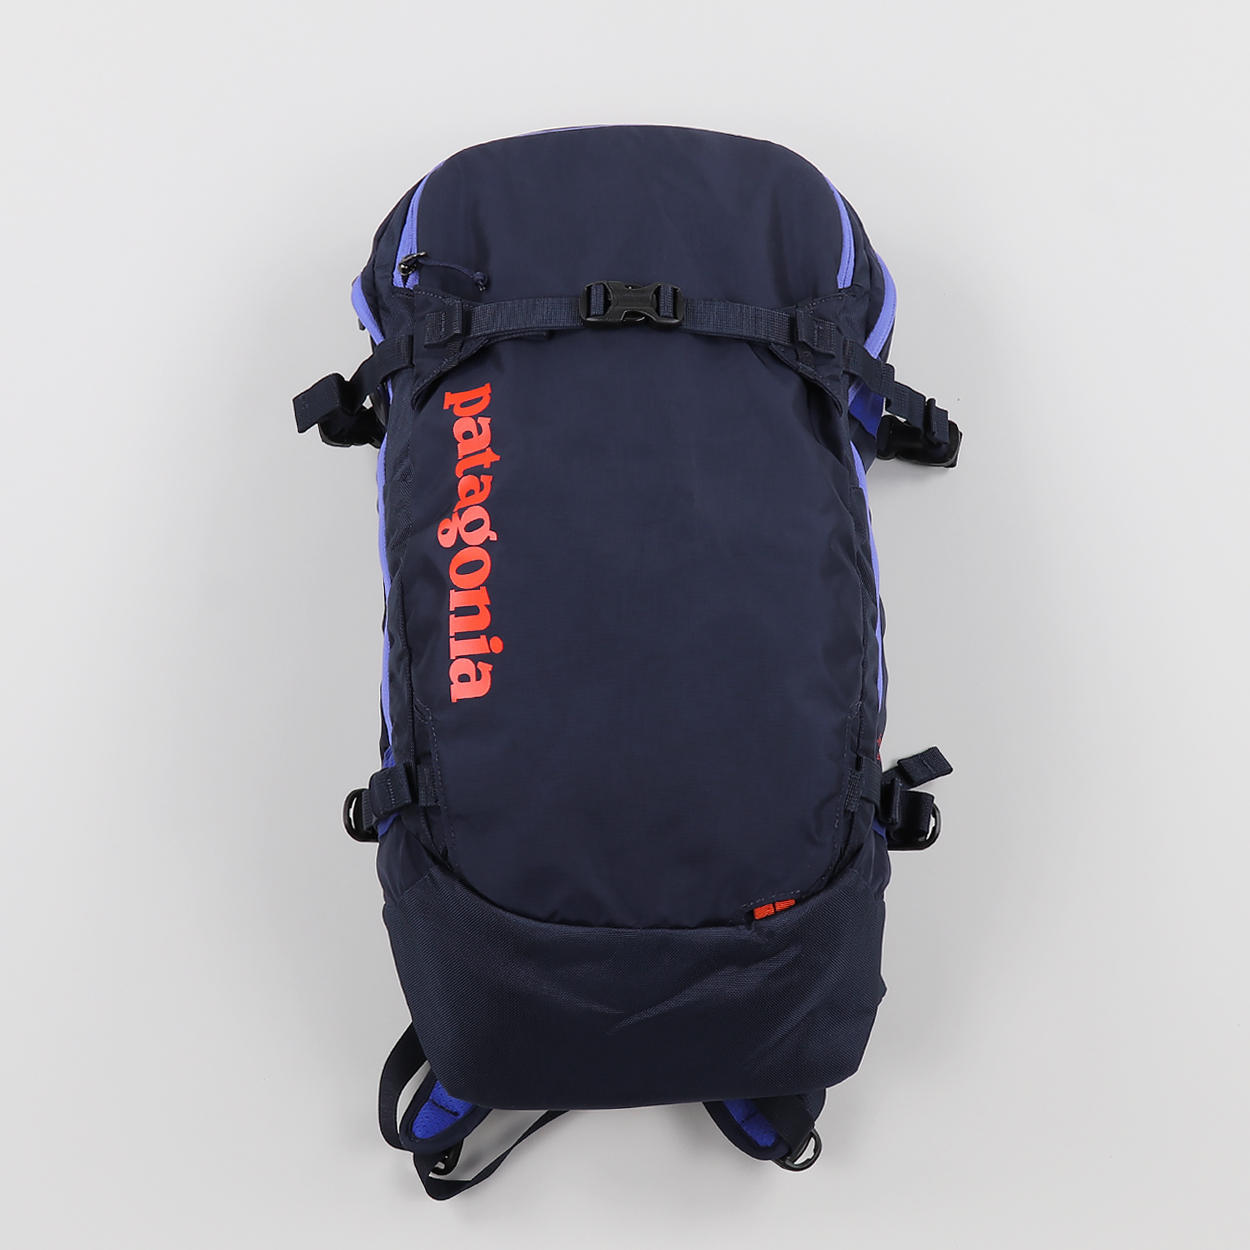 Patagonia Outdoor Technical SnowDrifter Pack 20L Navy Blue £77.00 80096ae1d06a0